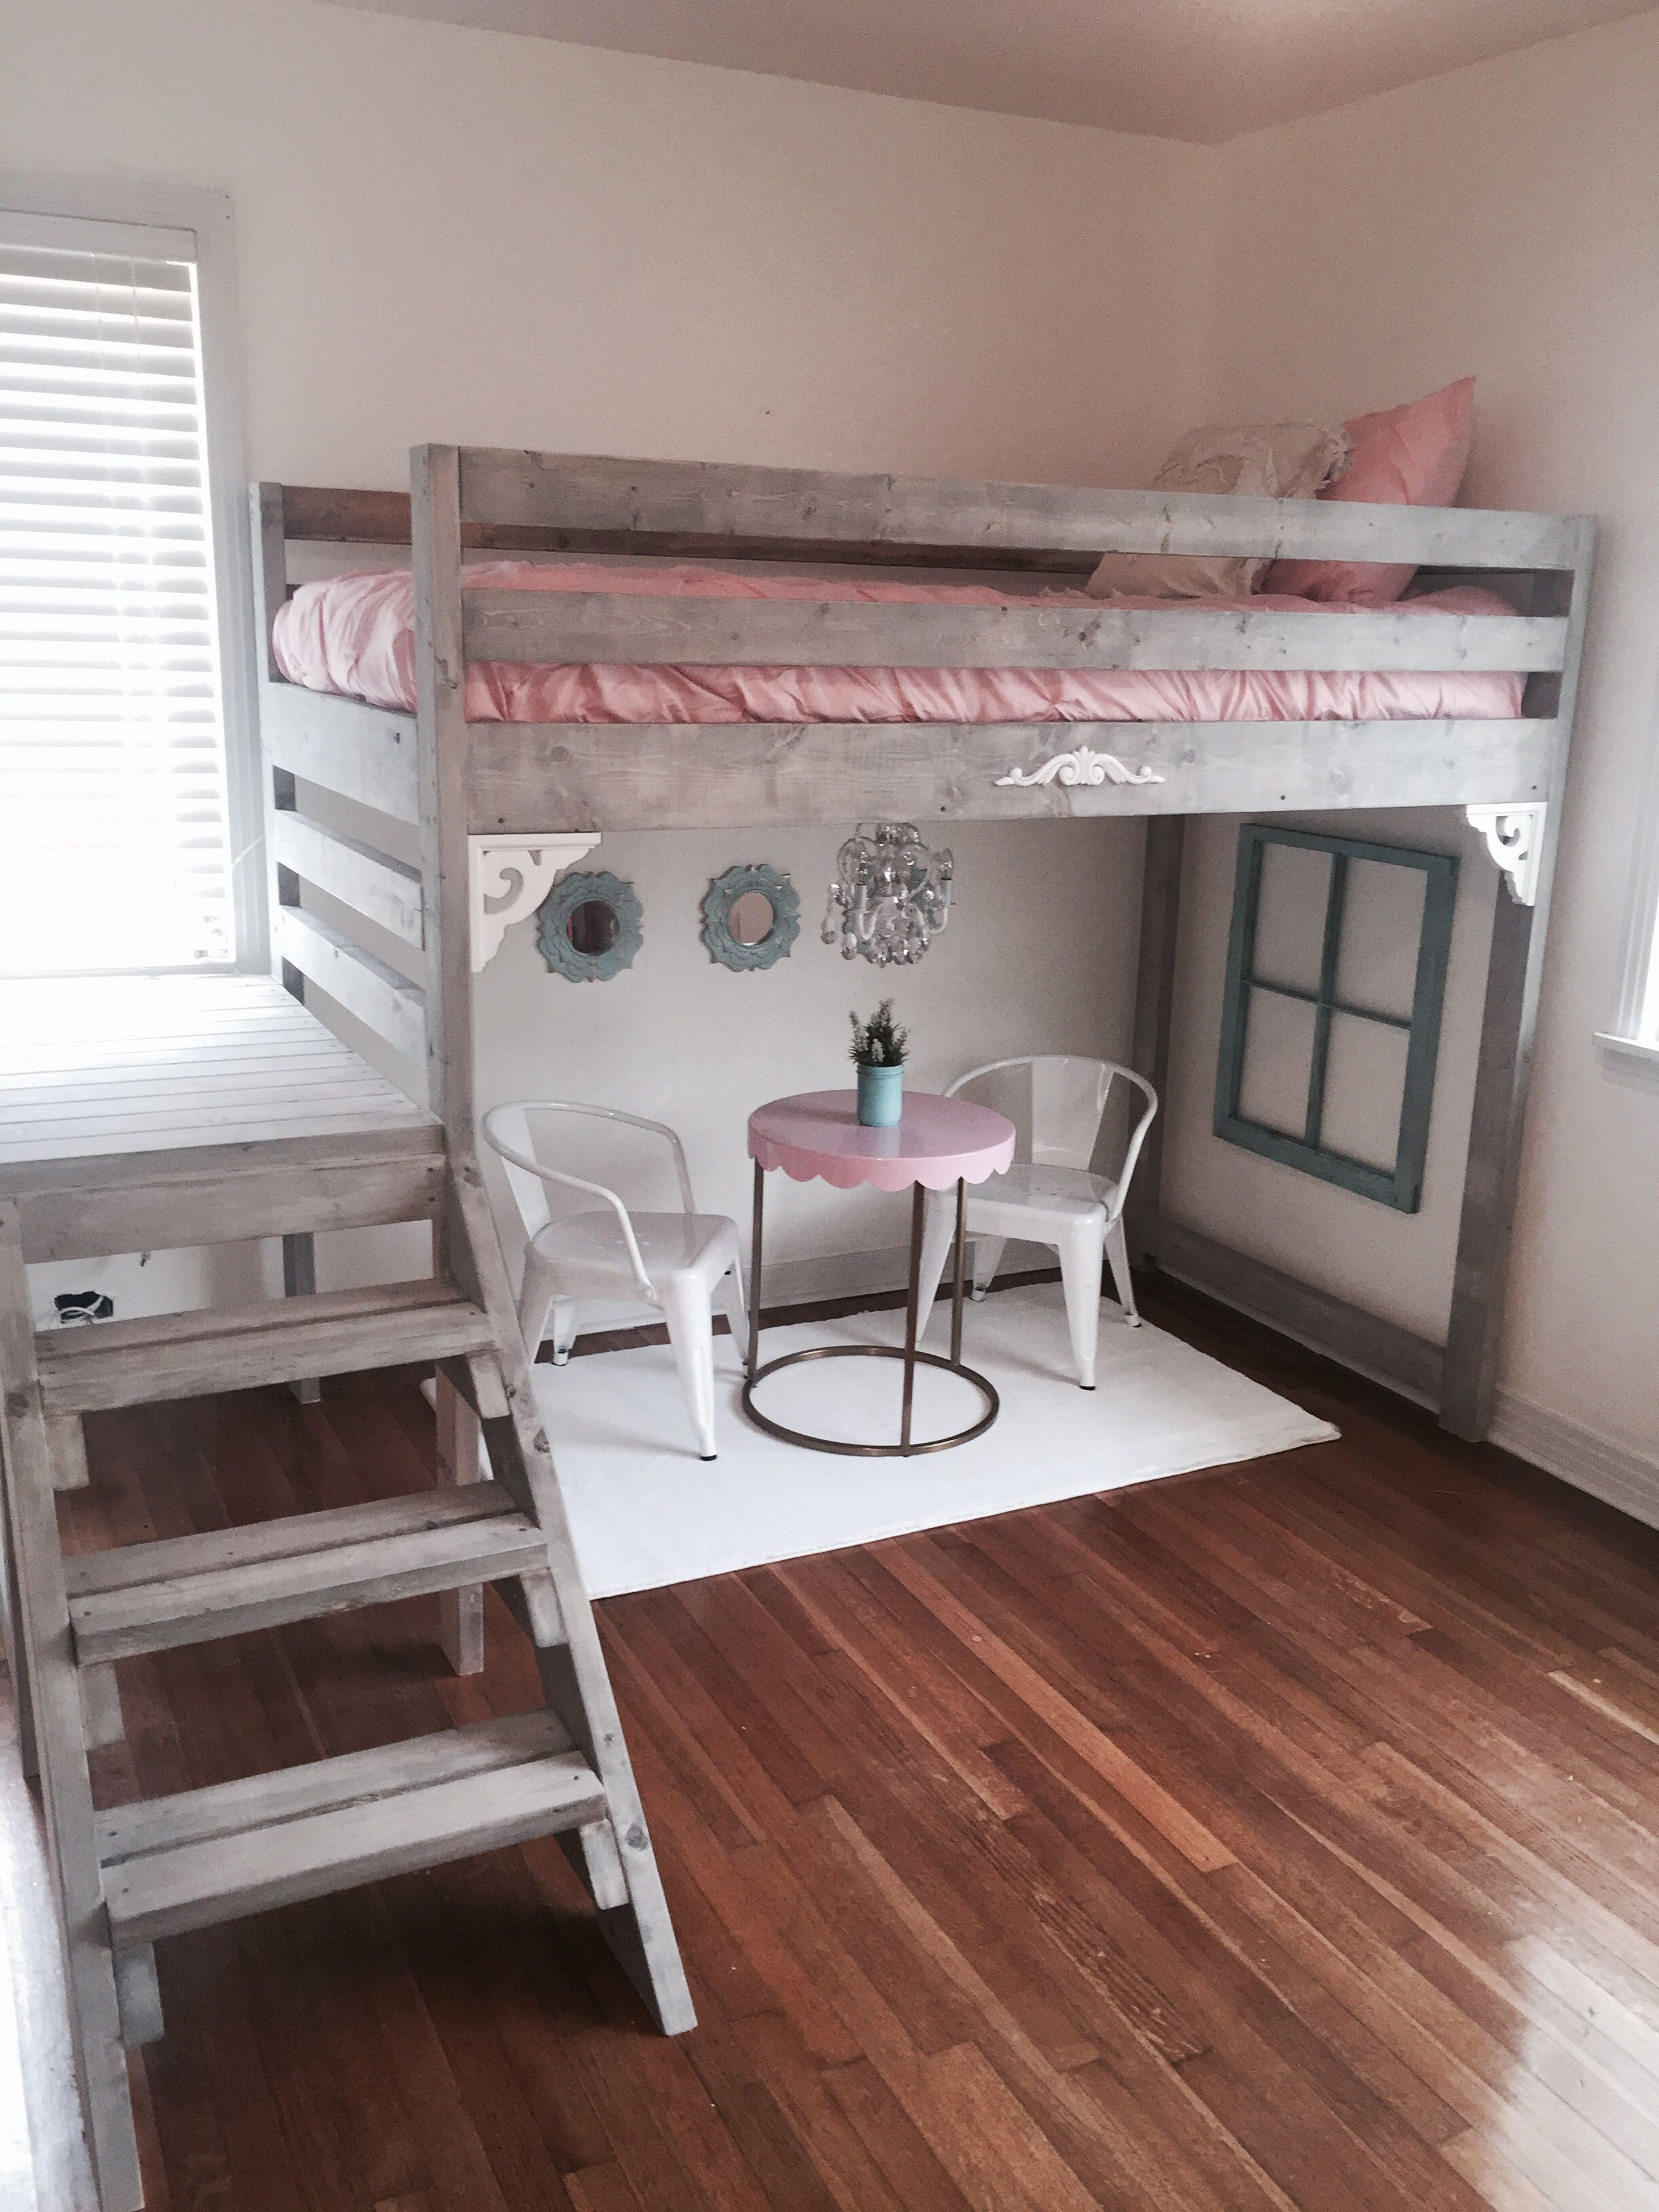 Cute diy room decor pinterest ana white loft bed i made for my daughters room  daughters room